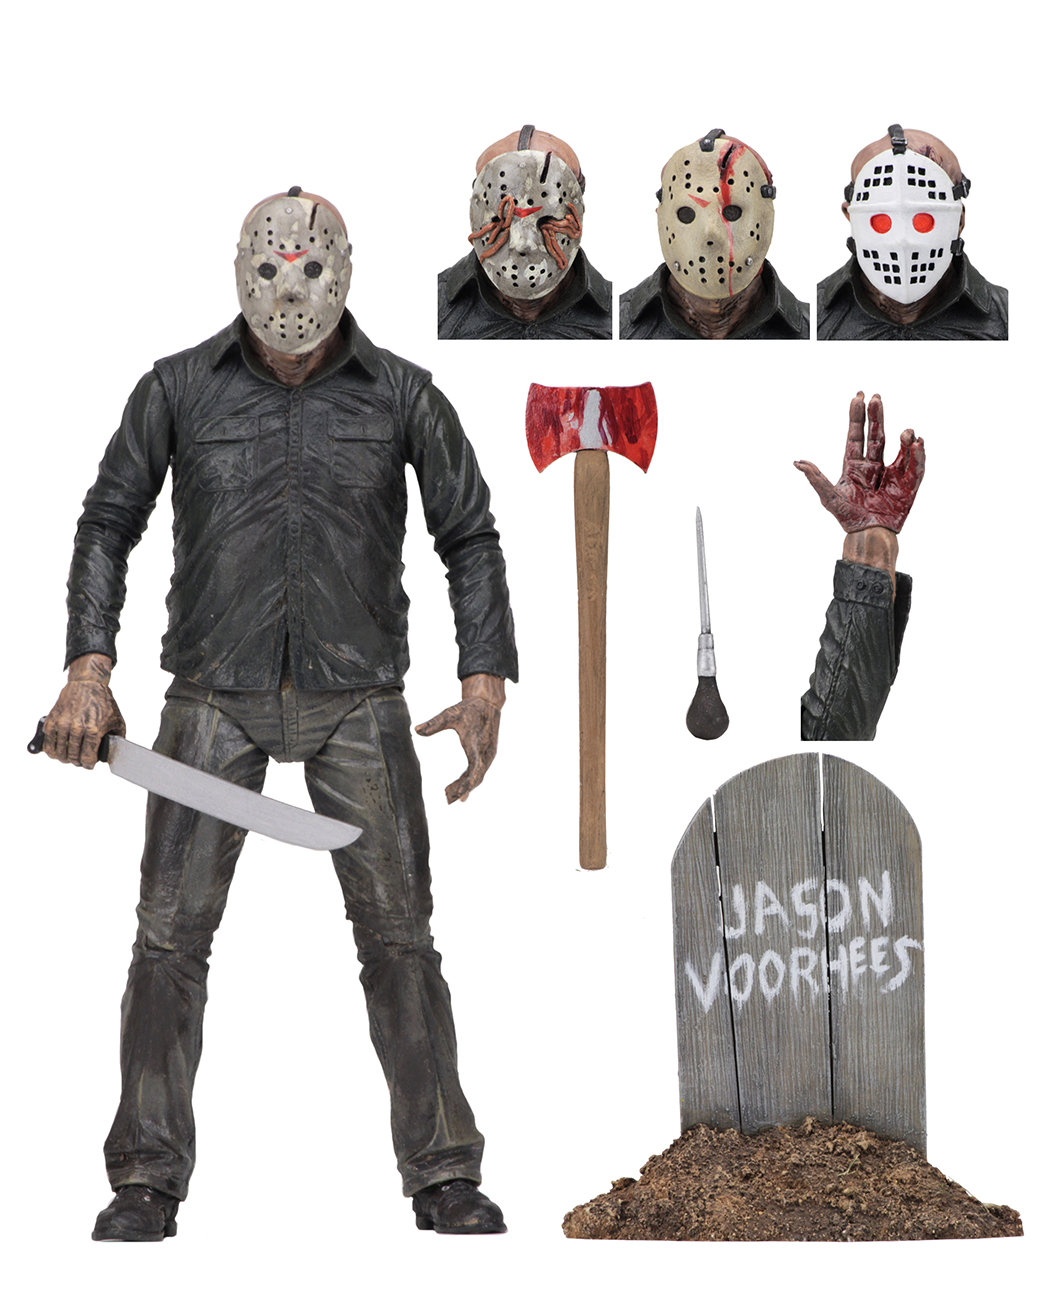 NECA-Part-5-Dream-Sequence-Jason-002.jpg